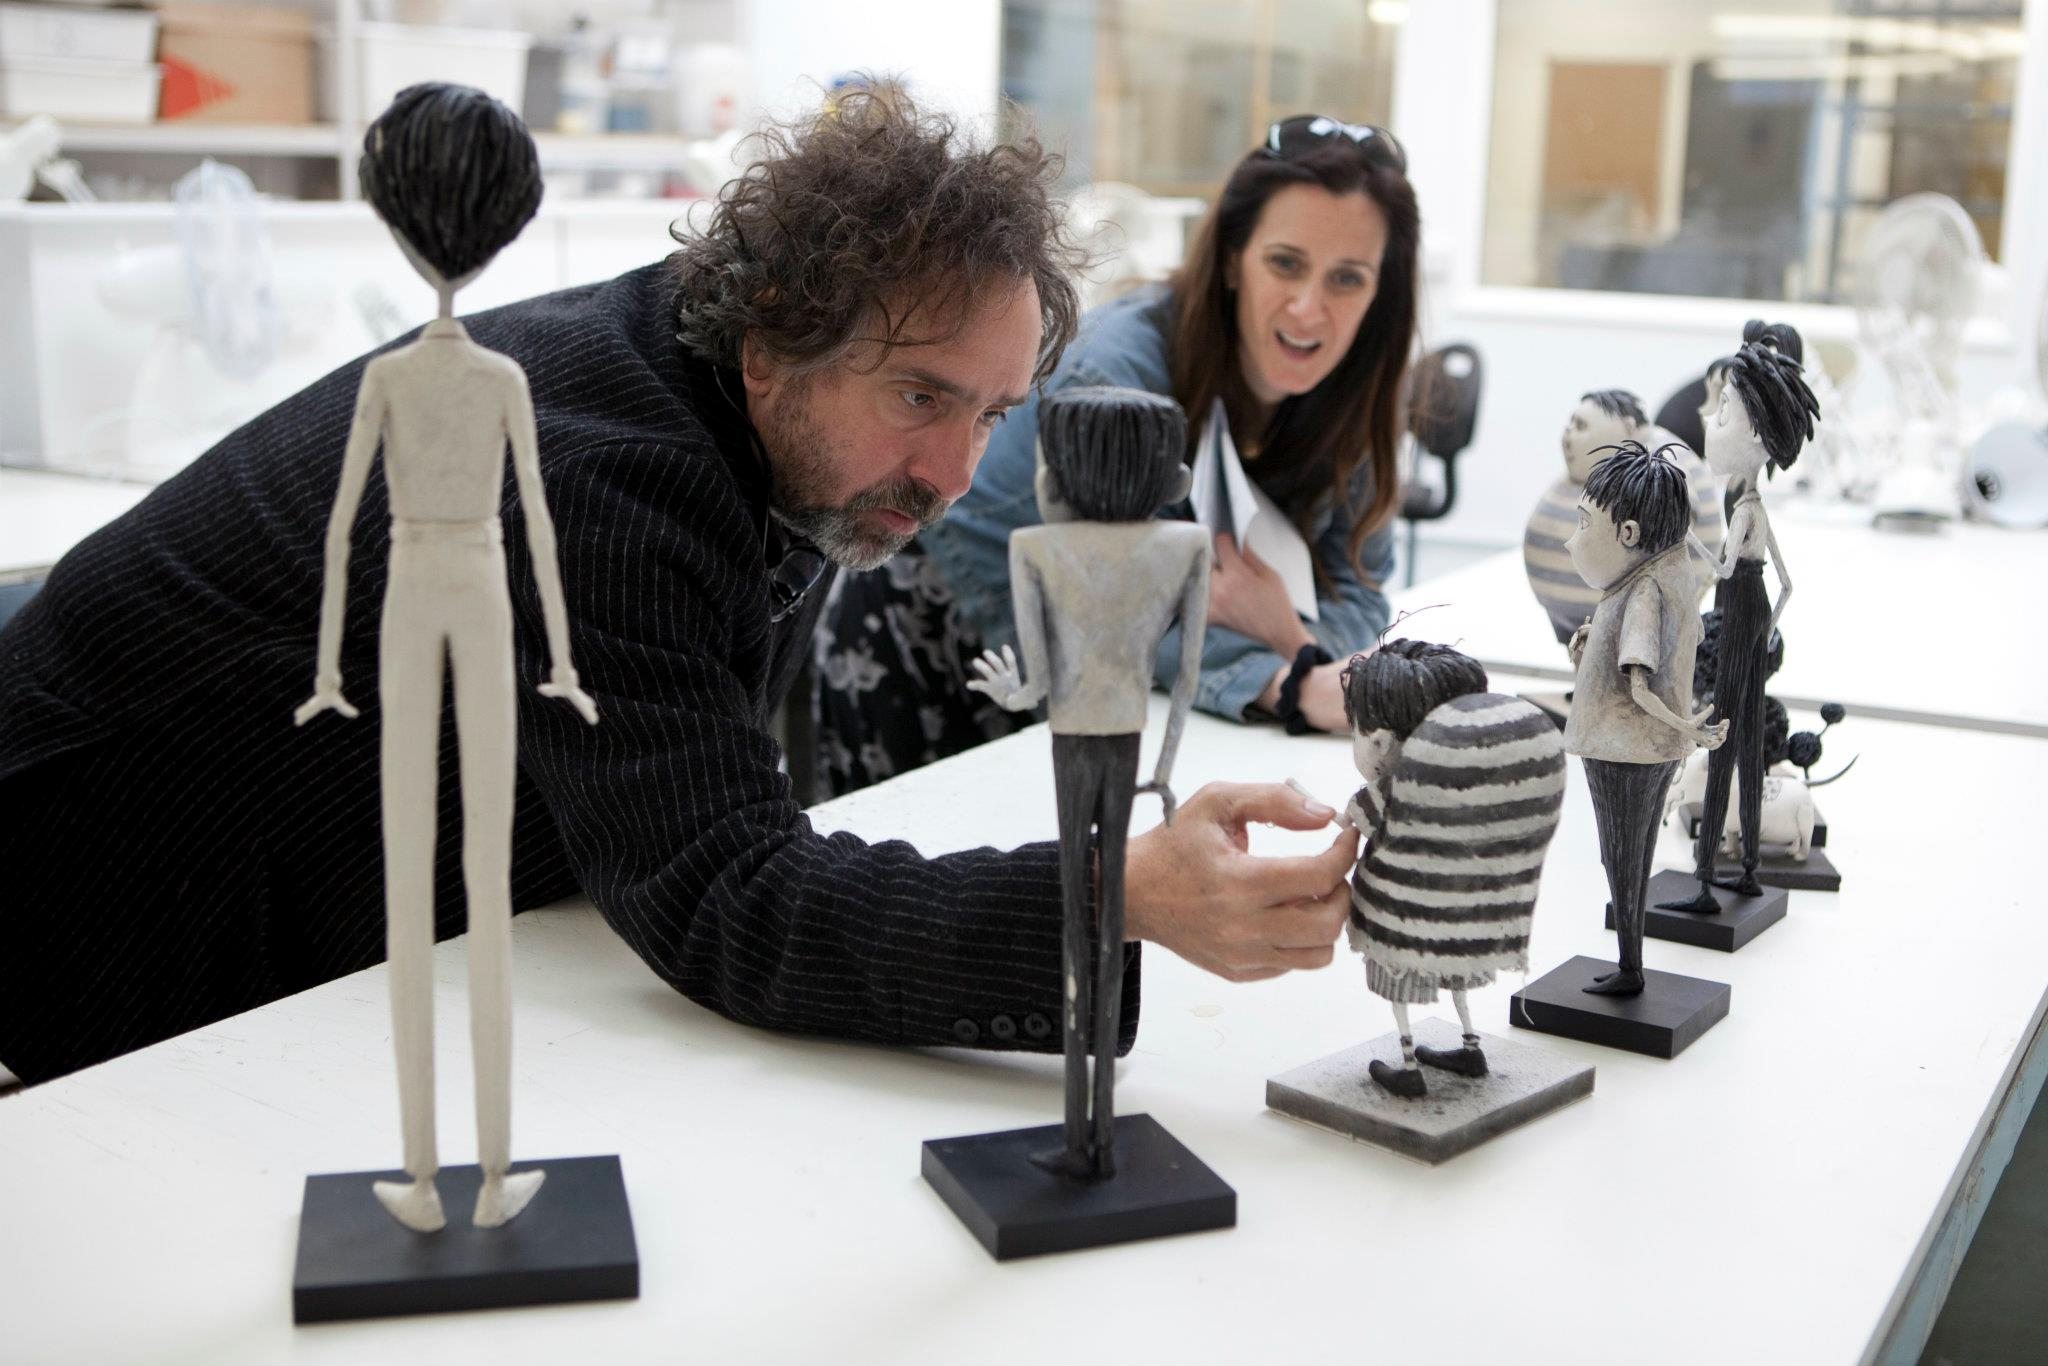 http://puyanama.com/wp-content/uploads/Frankenweenie2/Director%20Tim%20Burton%20reviews%20the%20character%20maquettes%20in%20the%20Puppet%20Hospital%20with%20Producer%20Allison%20Abbate.jpg